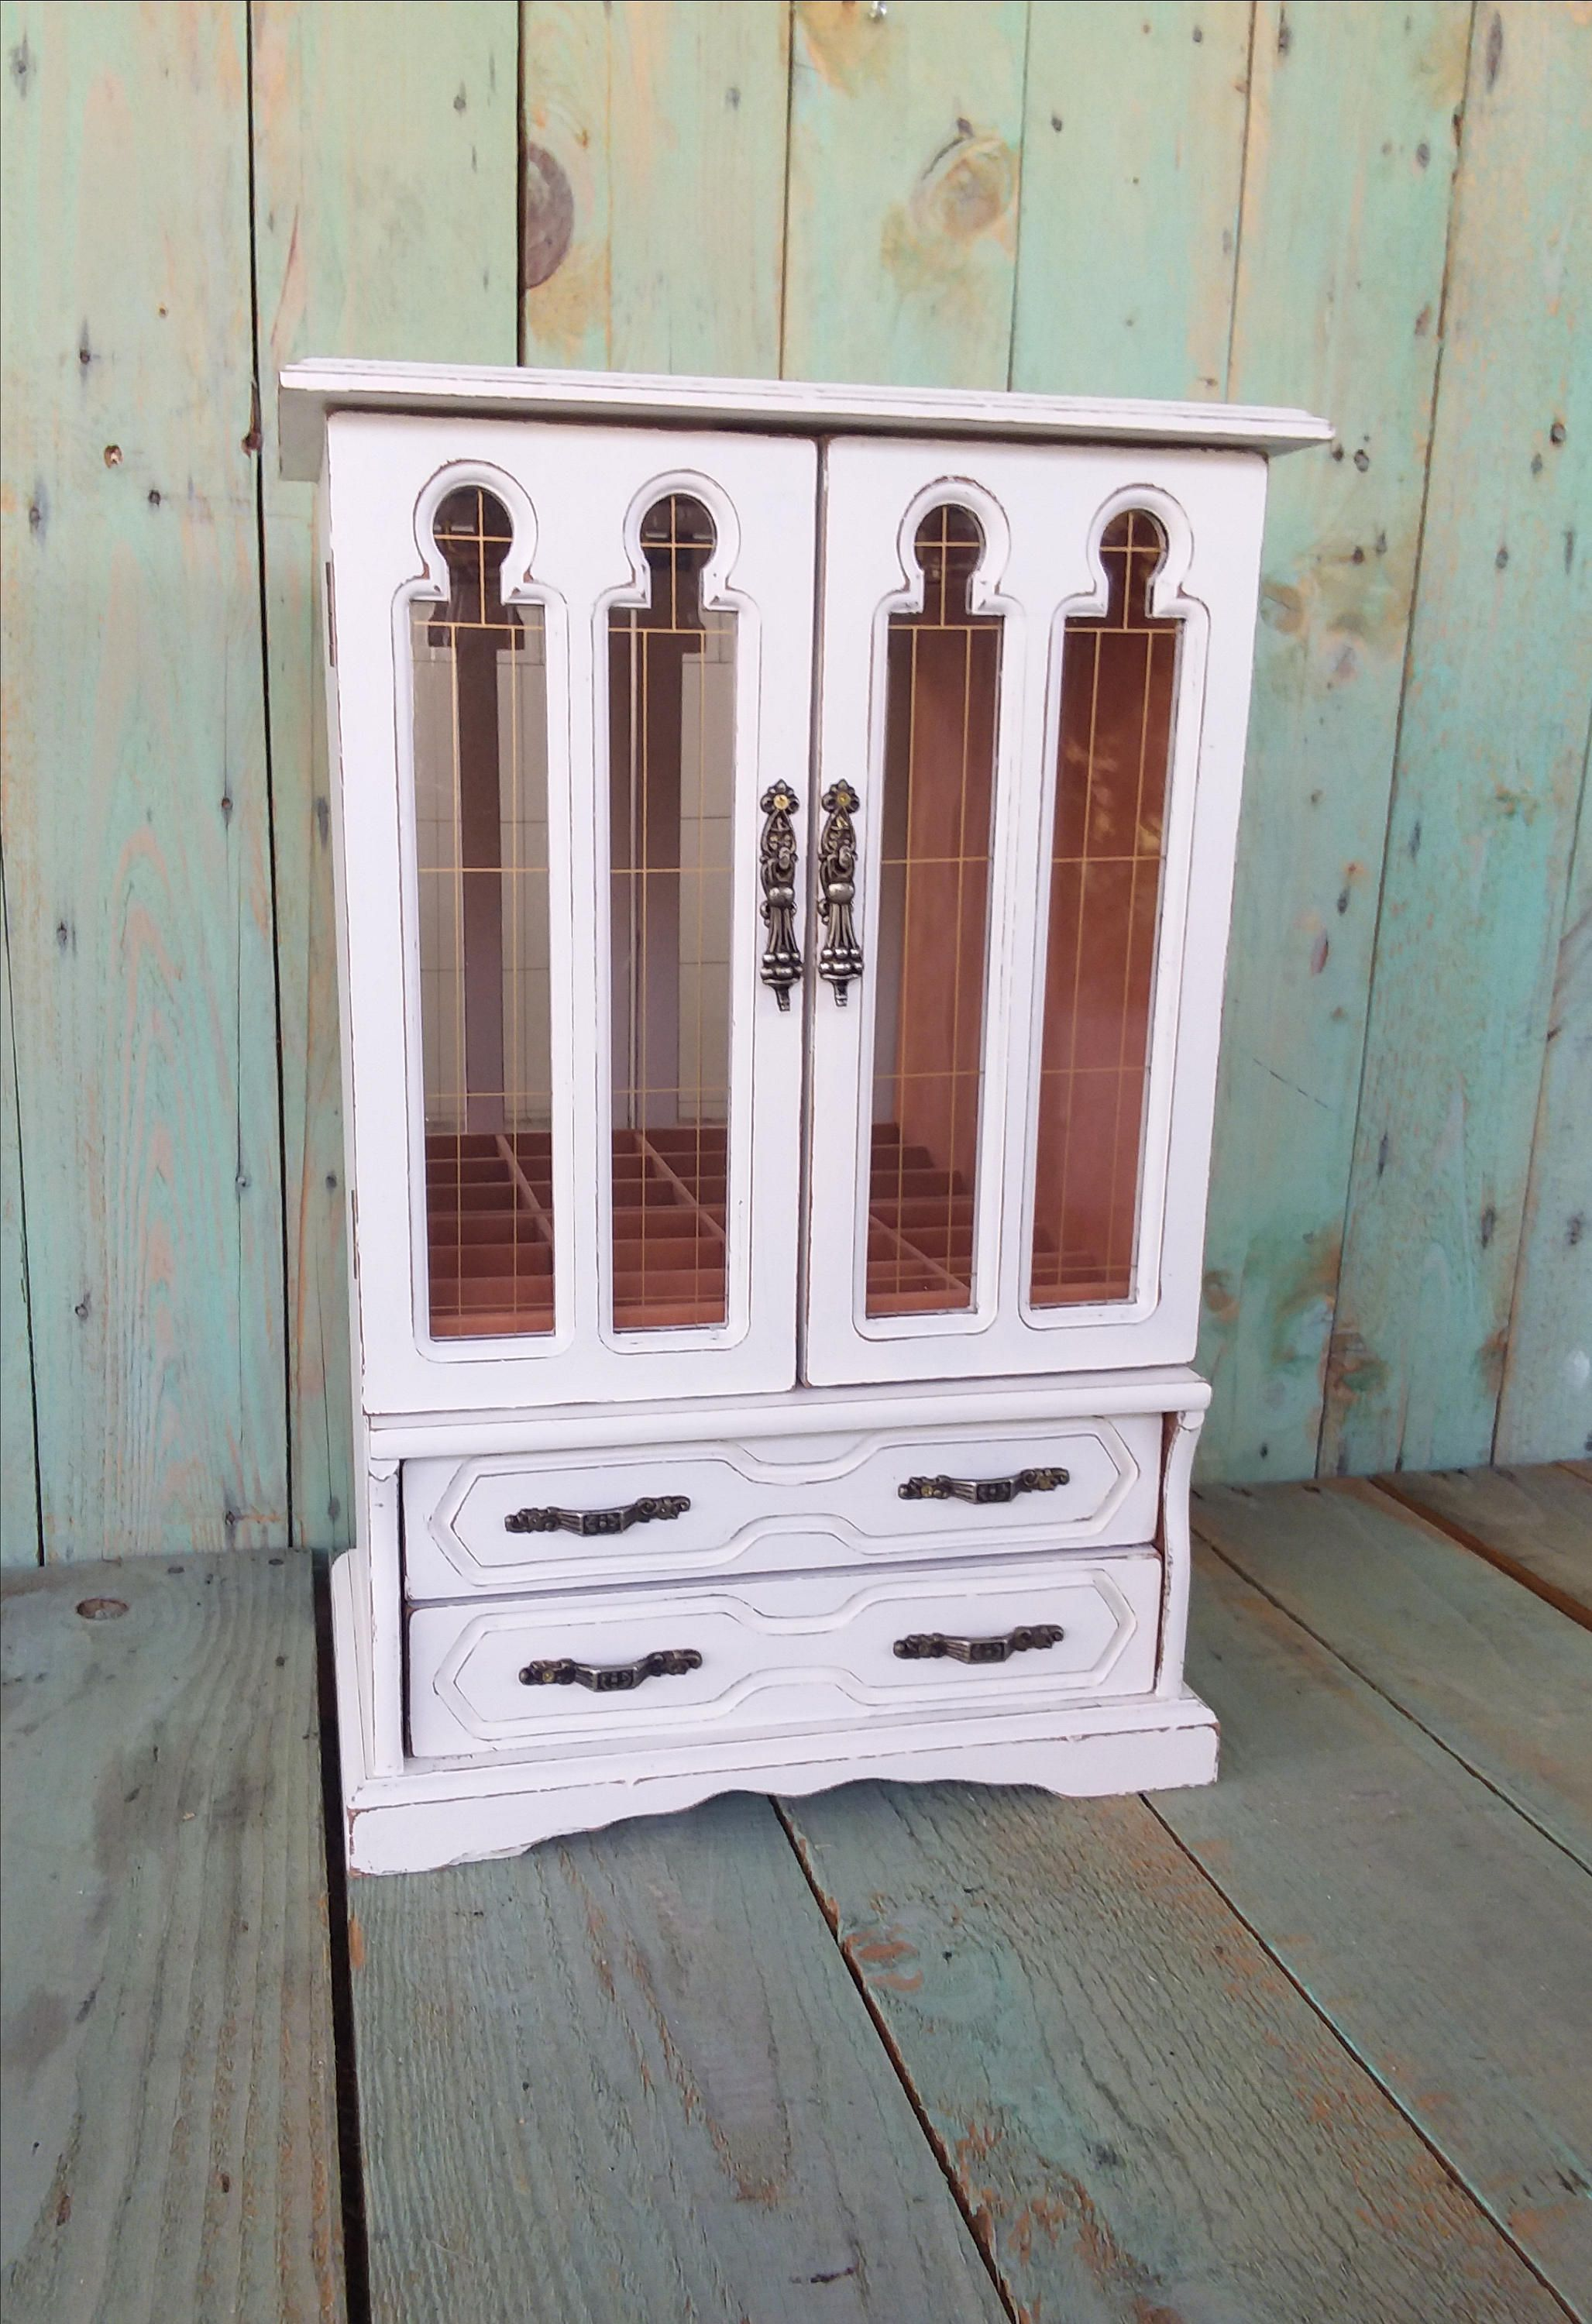 Large Vintage Shabby Chic Rustic Wooden Jewelry Box Armoire Painted Antique White  Distressed Upcycled Refurbished By